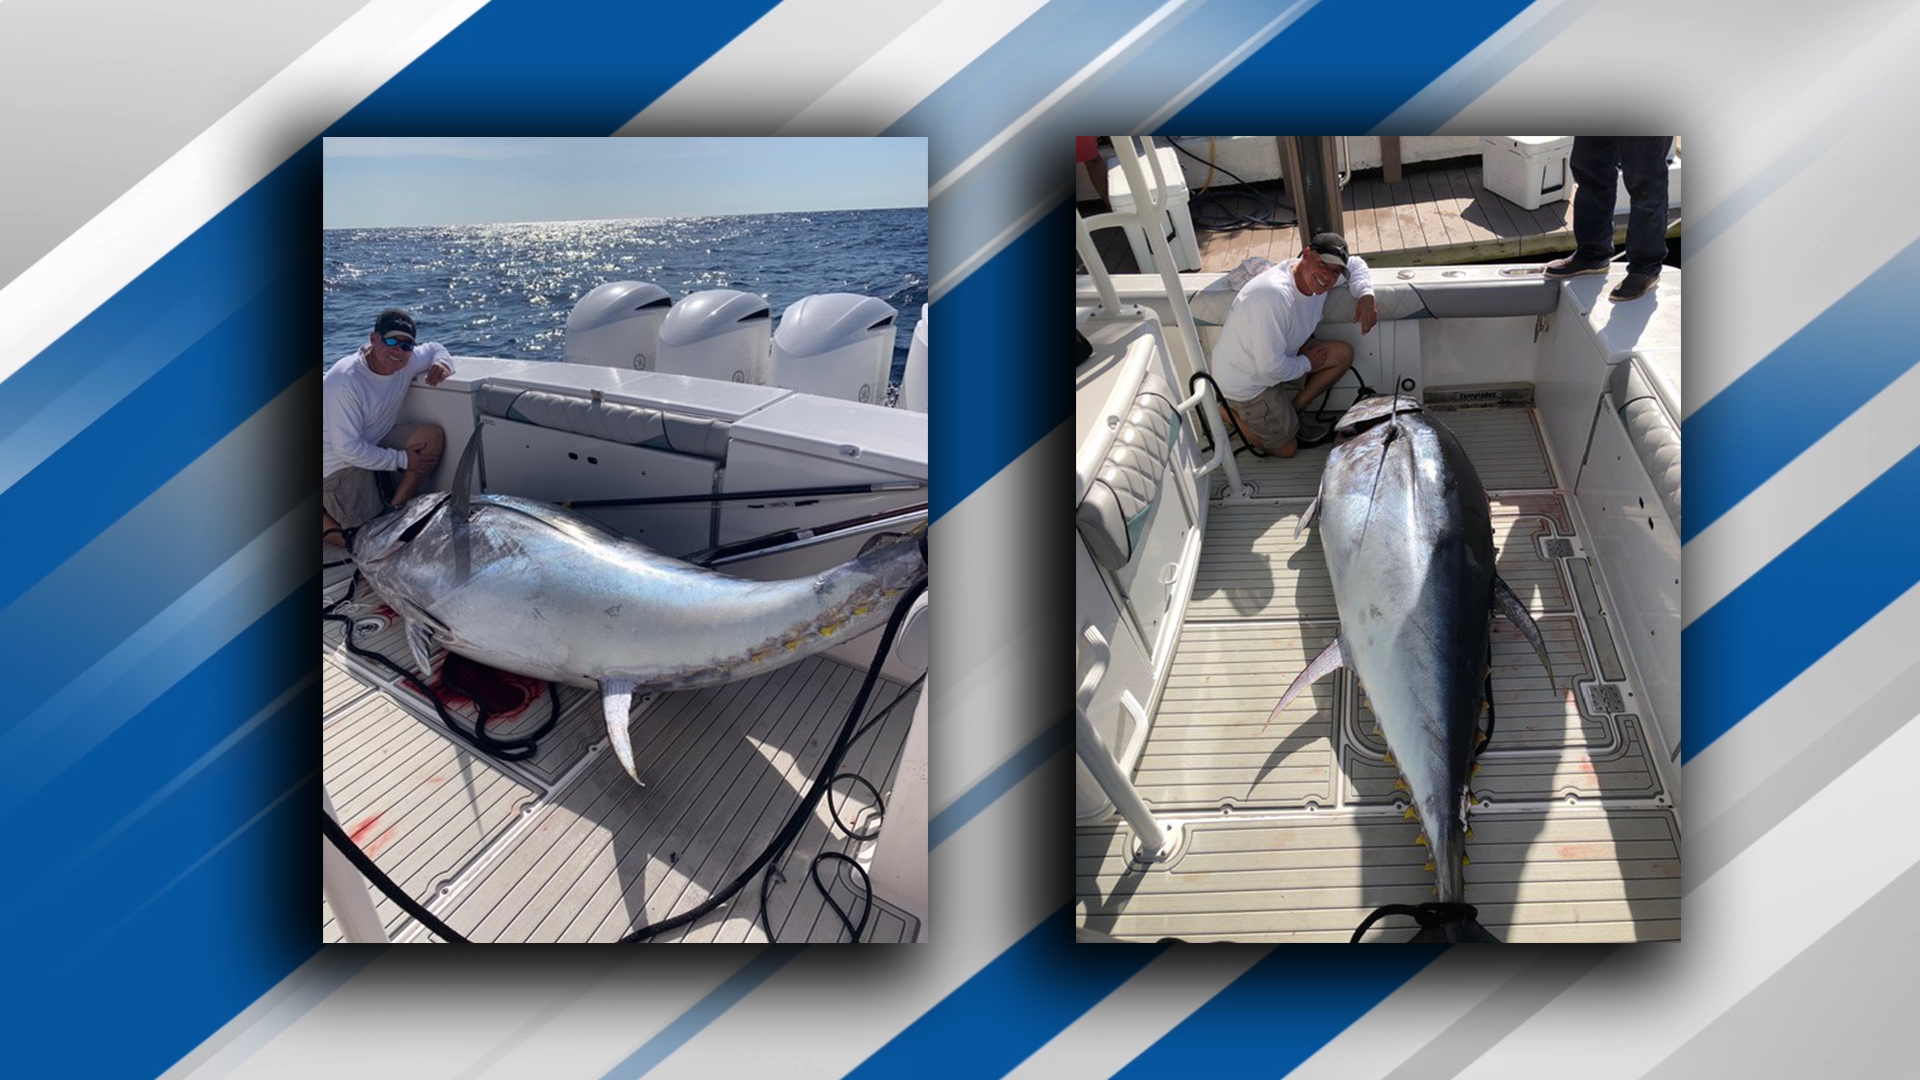 Captain Mike Busse of Reel Dusky Charters caught an 830 pound Atlantic bluefin tuna off the coast of Boca Raton. (Mike Busse)